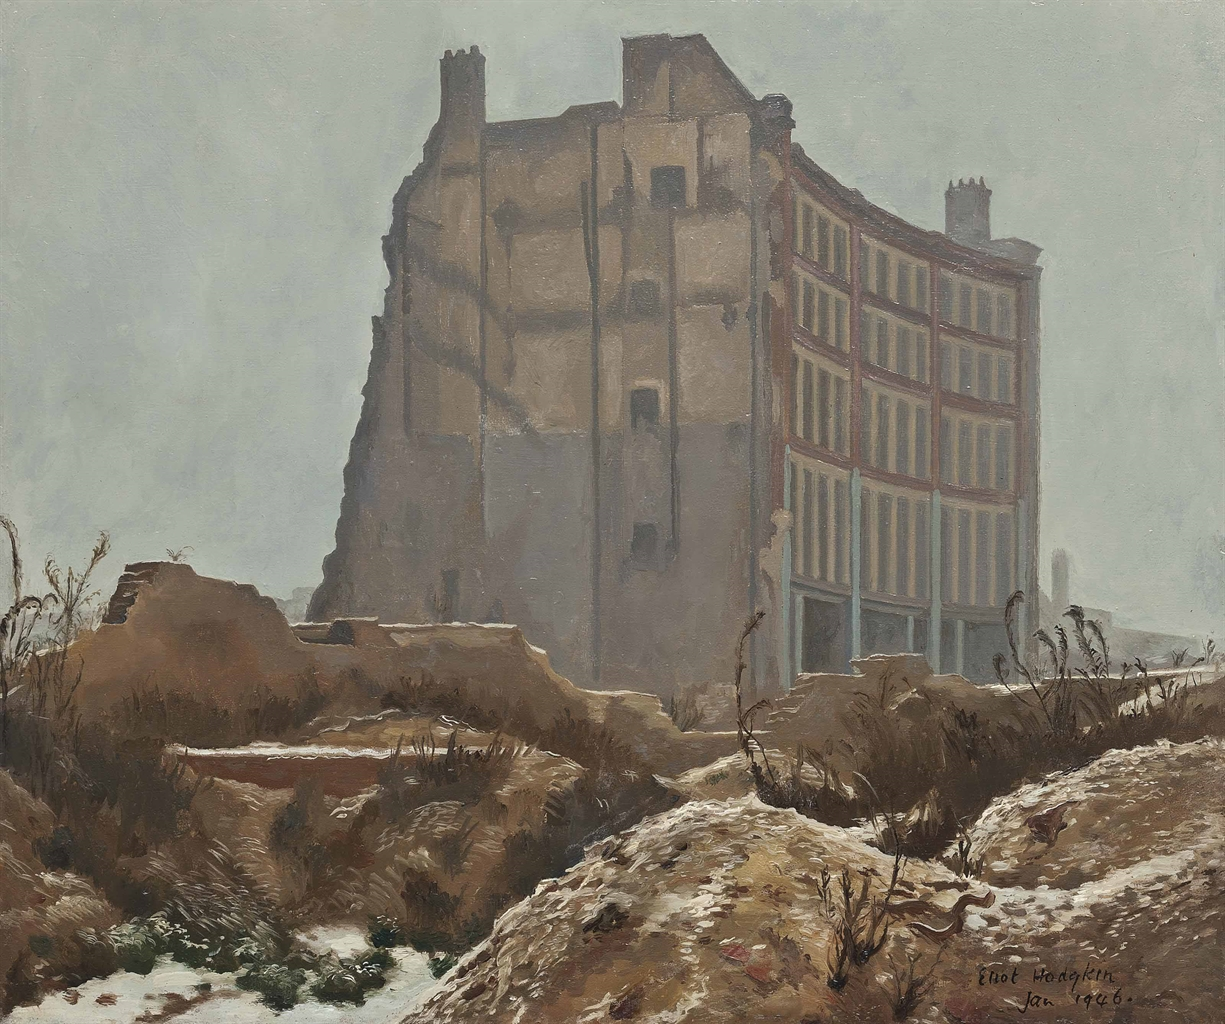 Eliot Hodgkin-A Building off Goswell Road January 1946-1946